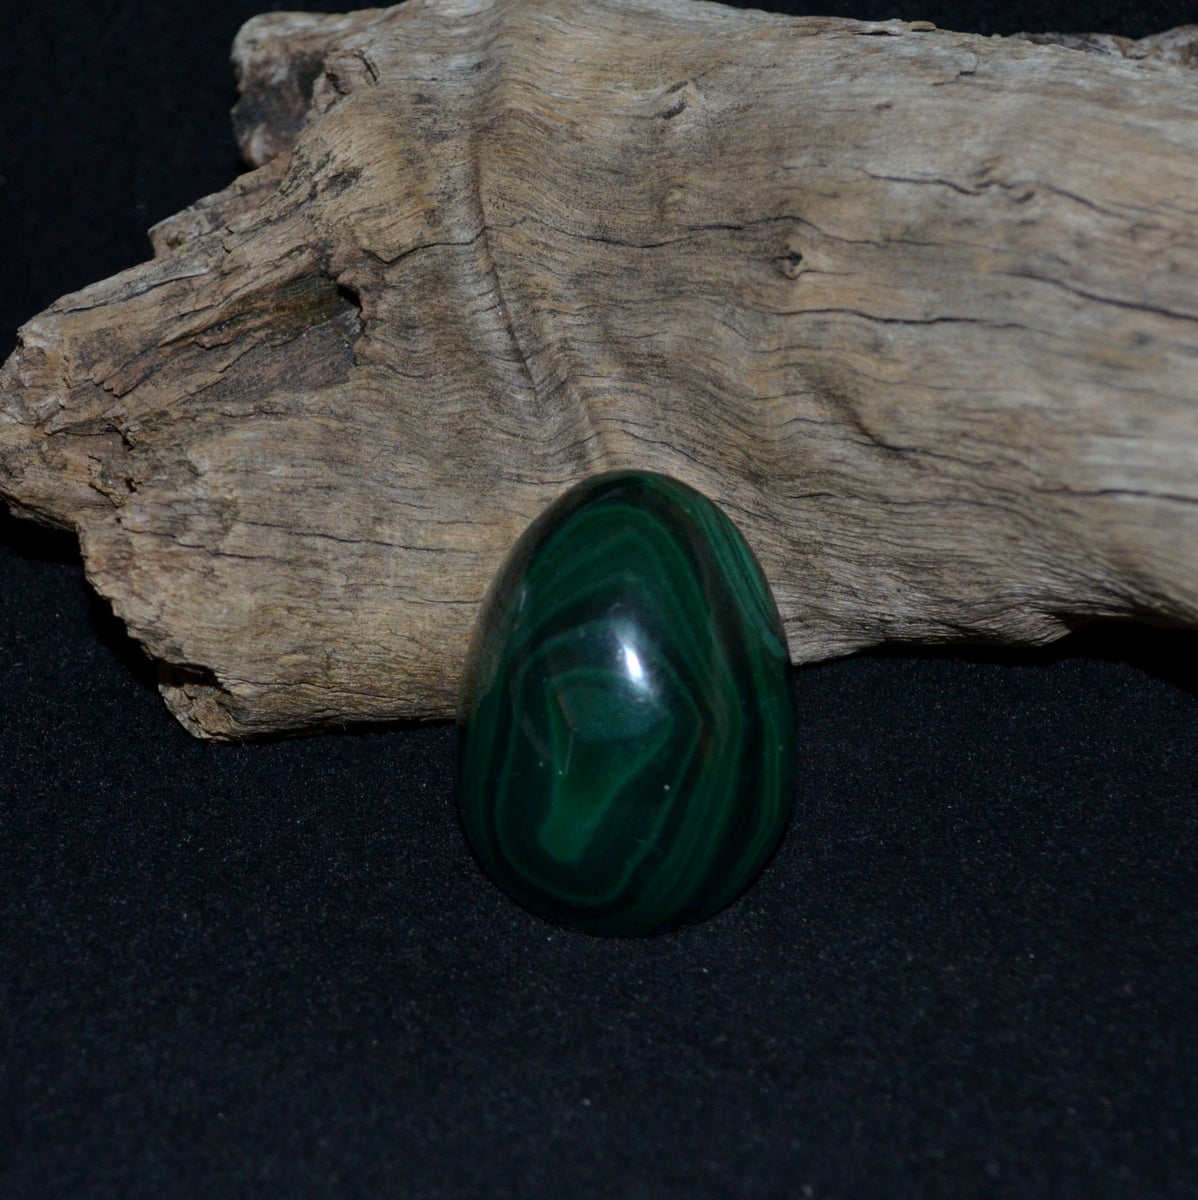 Stunning Malachite Egg - Protective Healing Truth - Shop Now at Illiom Crystals - We Have Afterpay